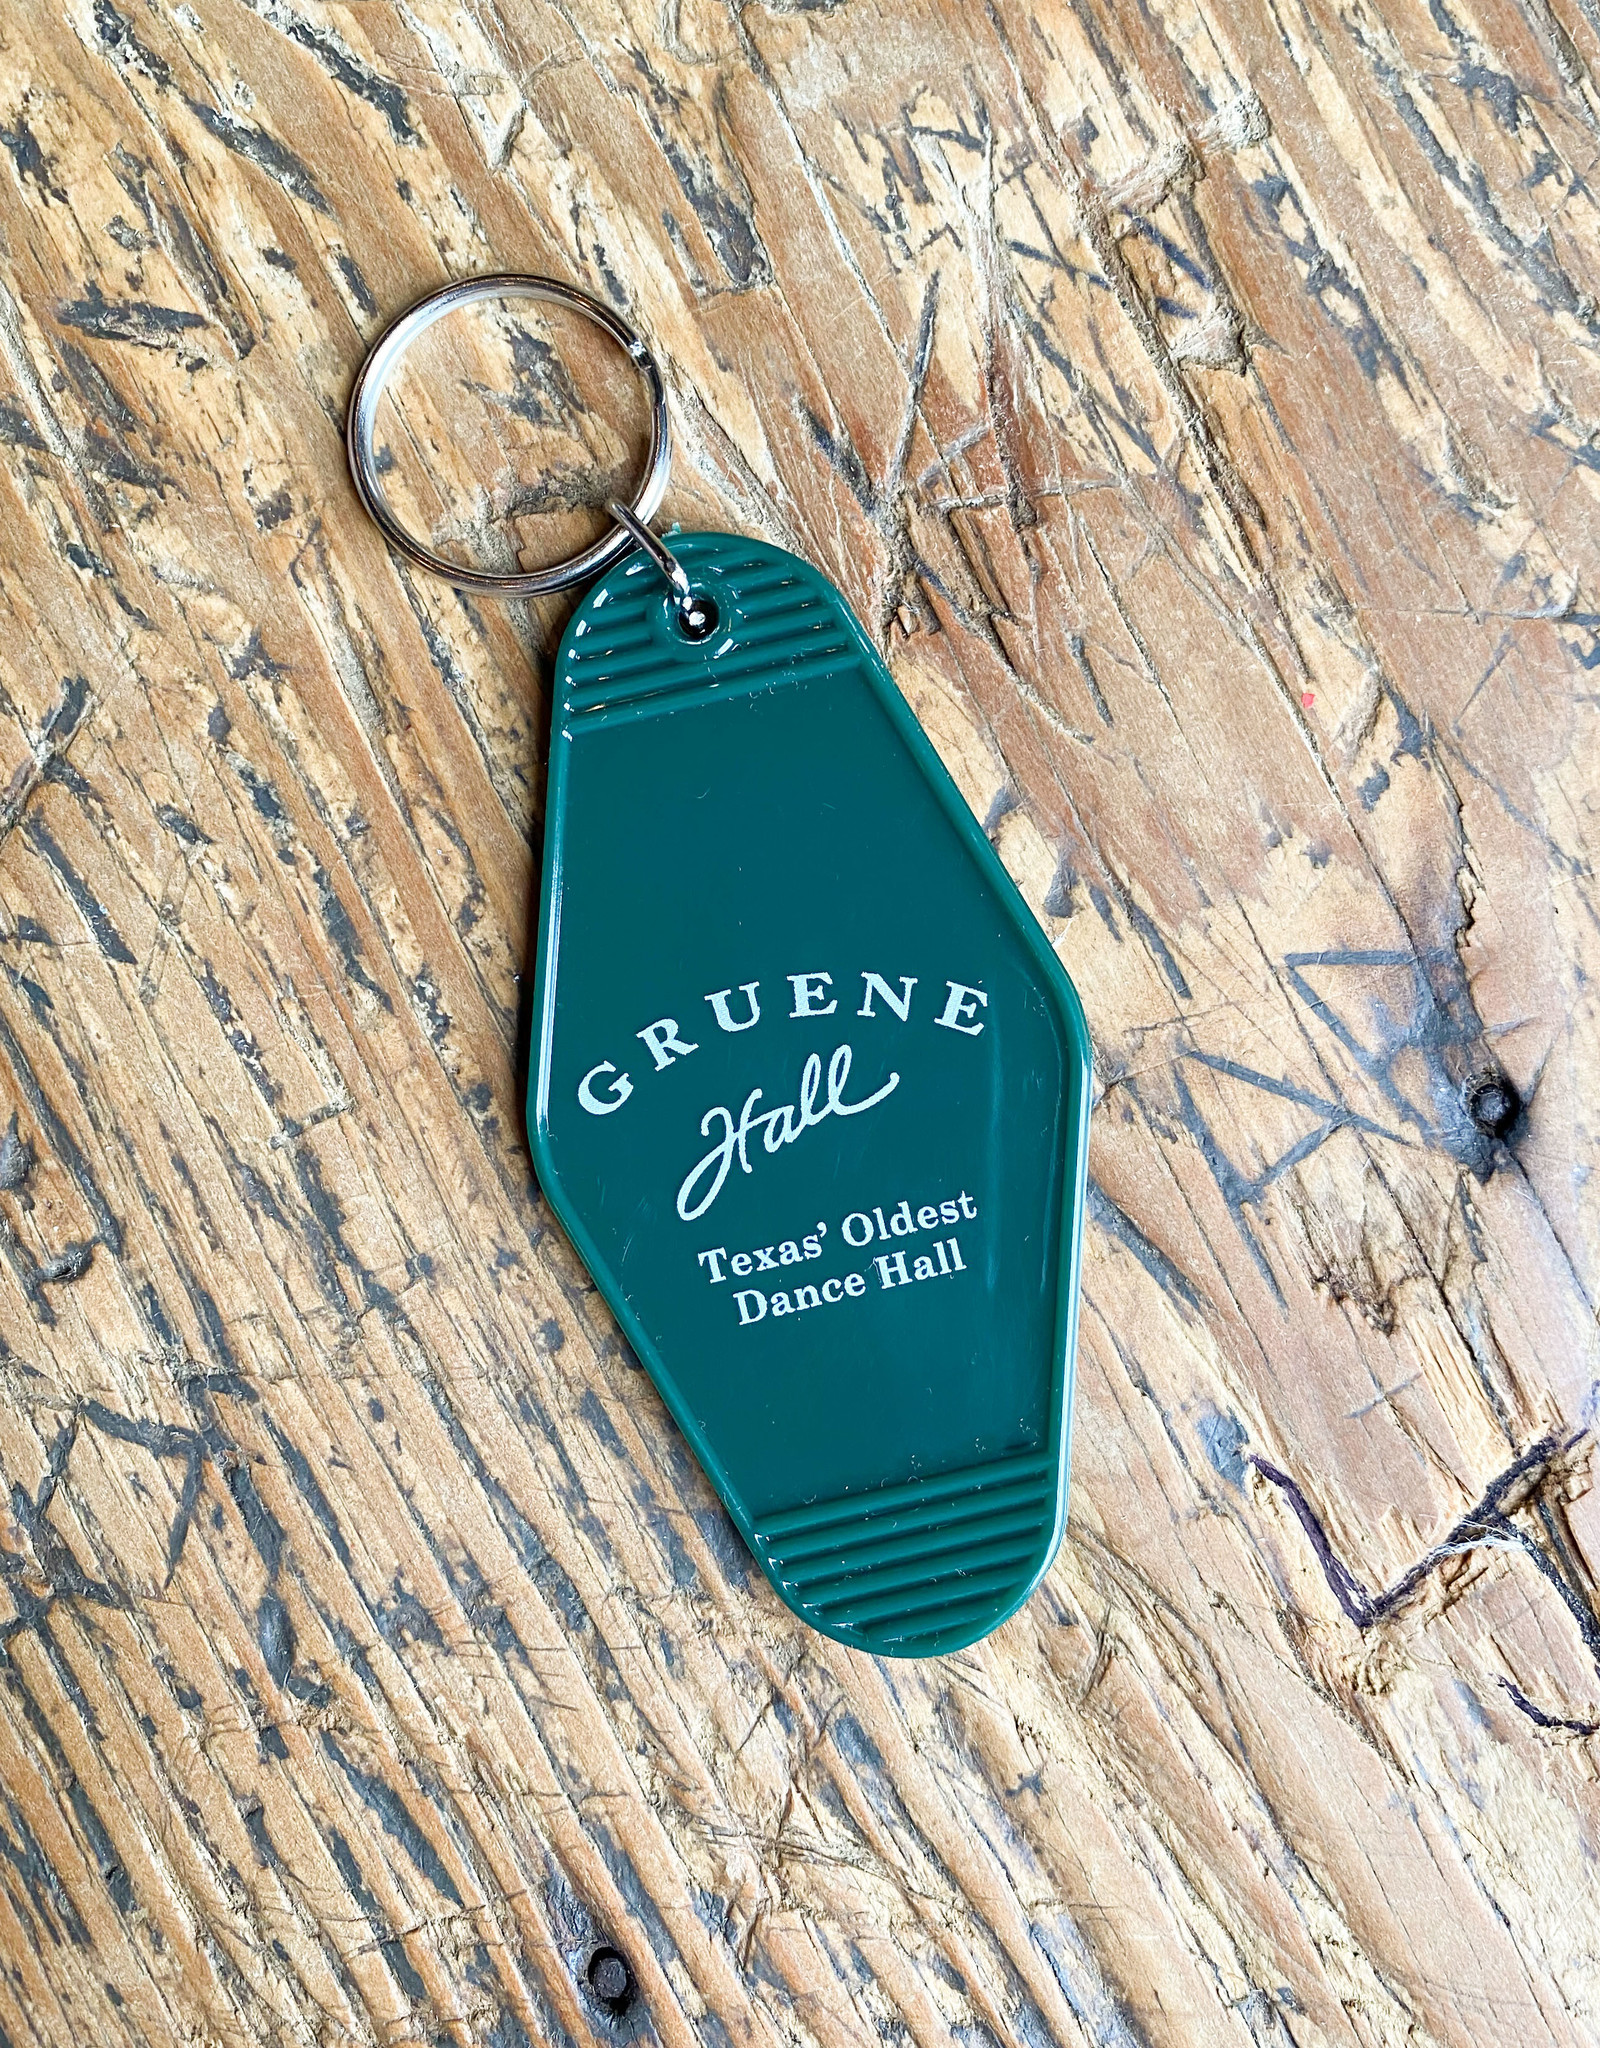 Gruene Hall Vintage Motel Key Chain